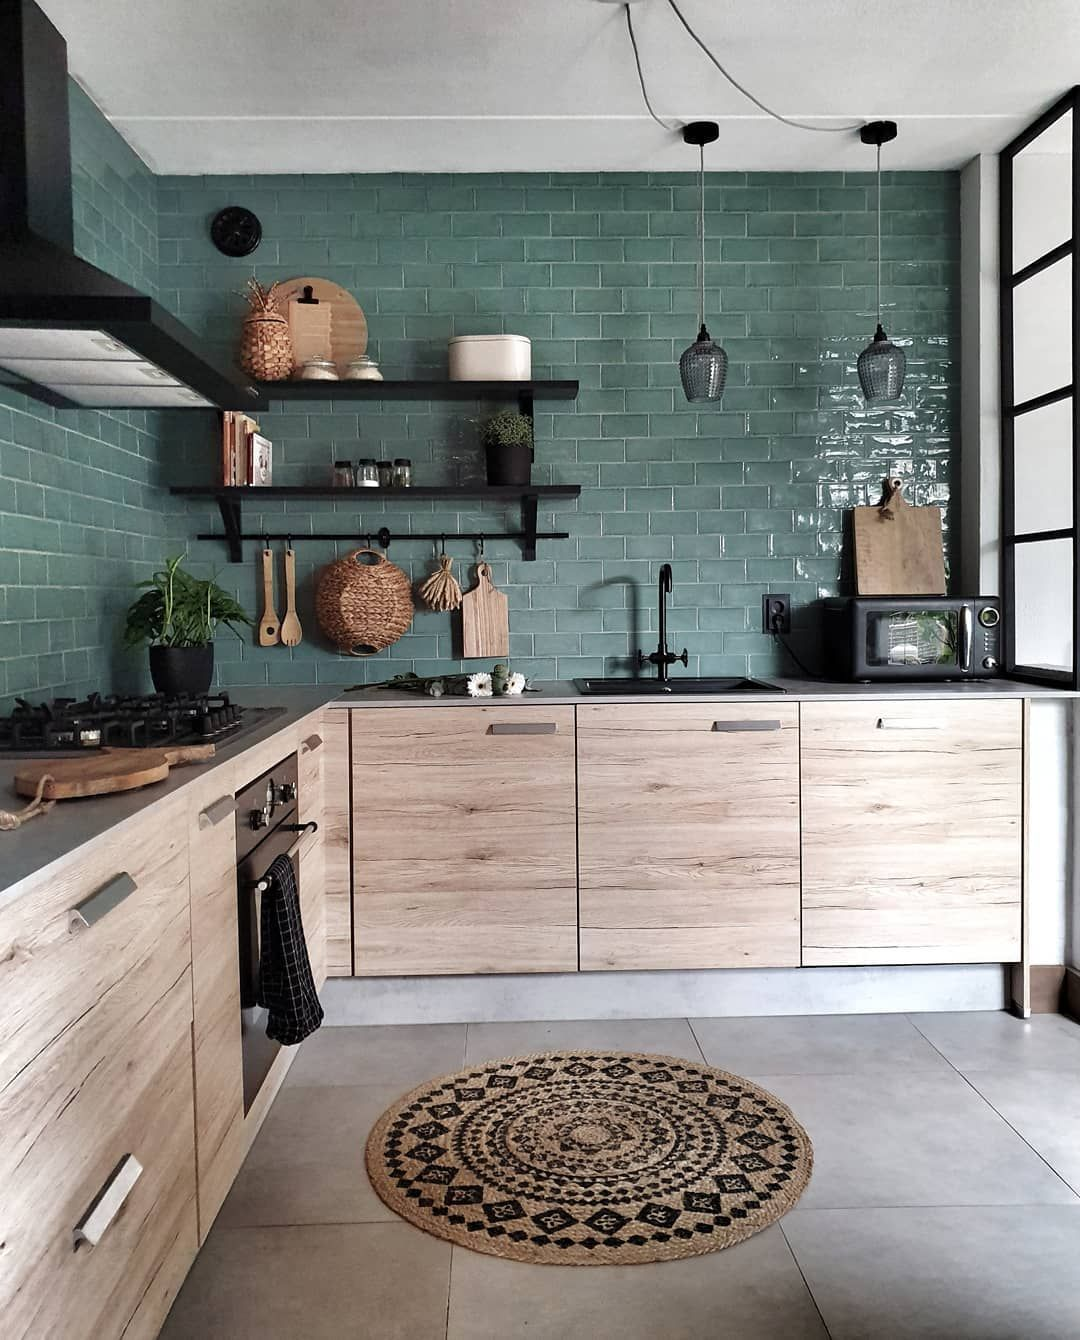 The texture of the wood cabinets against the lines of the green tile backsplash... This kitchen does balance right! (������: madeleineshouse72)